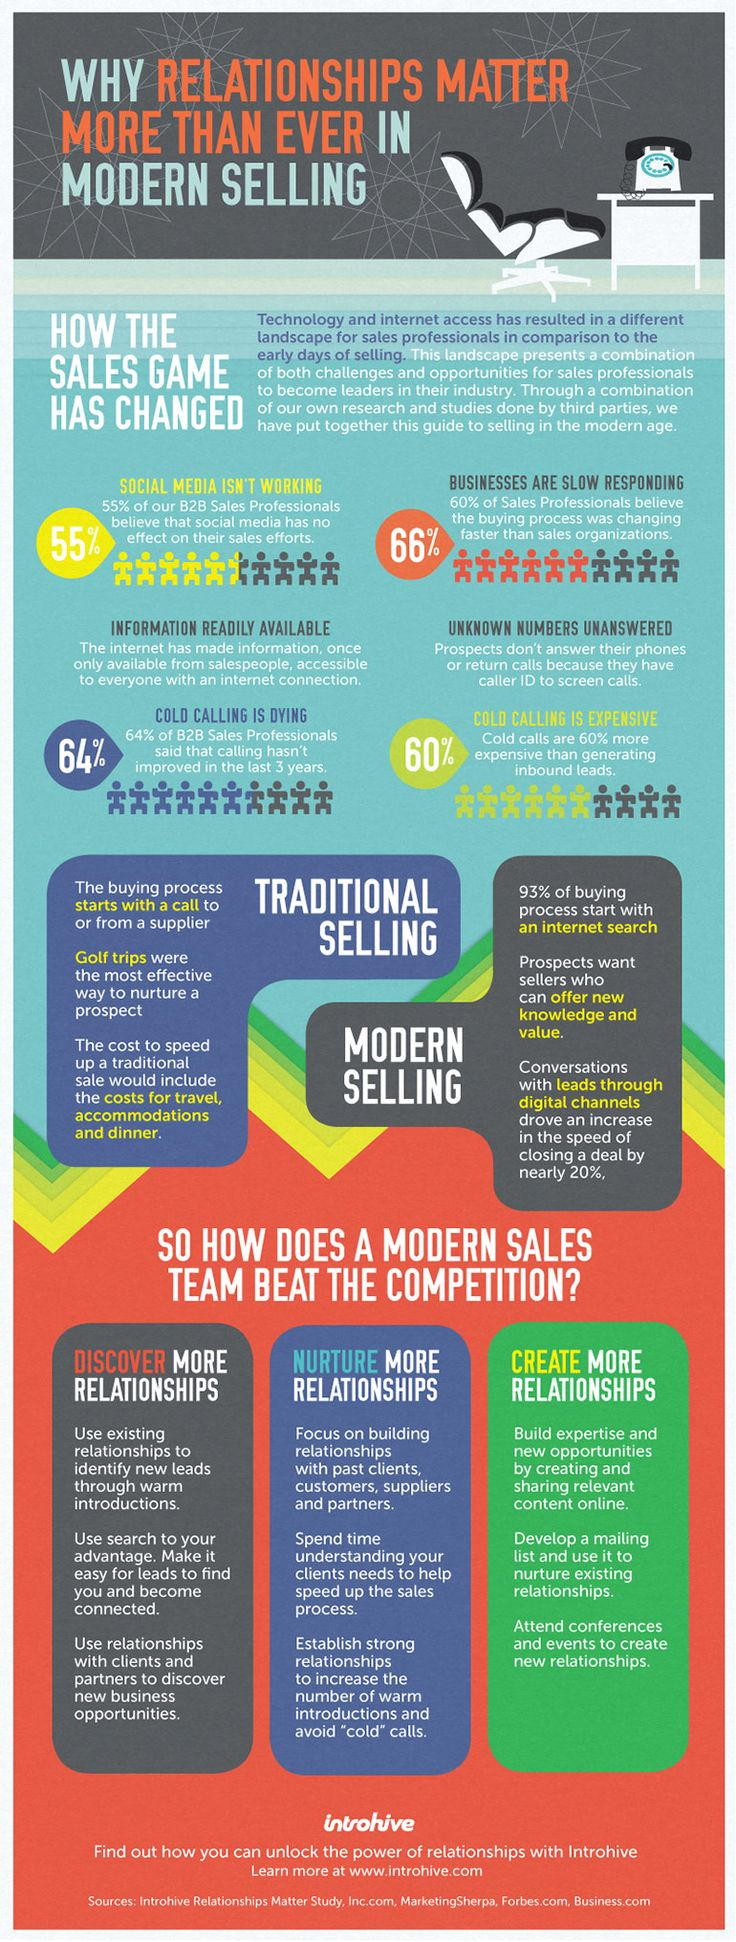 Why Relationships Matter More Than Ever in Modern Selling - Sales Infographic. Learn more about how you can get more sales now in Charlie's Smarter Selling Bootcamp. Enrollment ends 8/13/13! http://www.productiveflourishing.com/classes/smarter-selling-bootcamp/